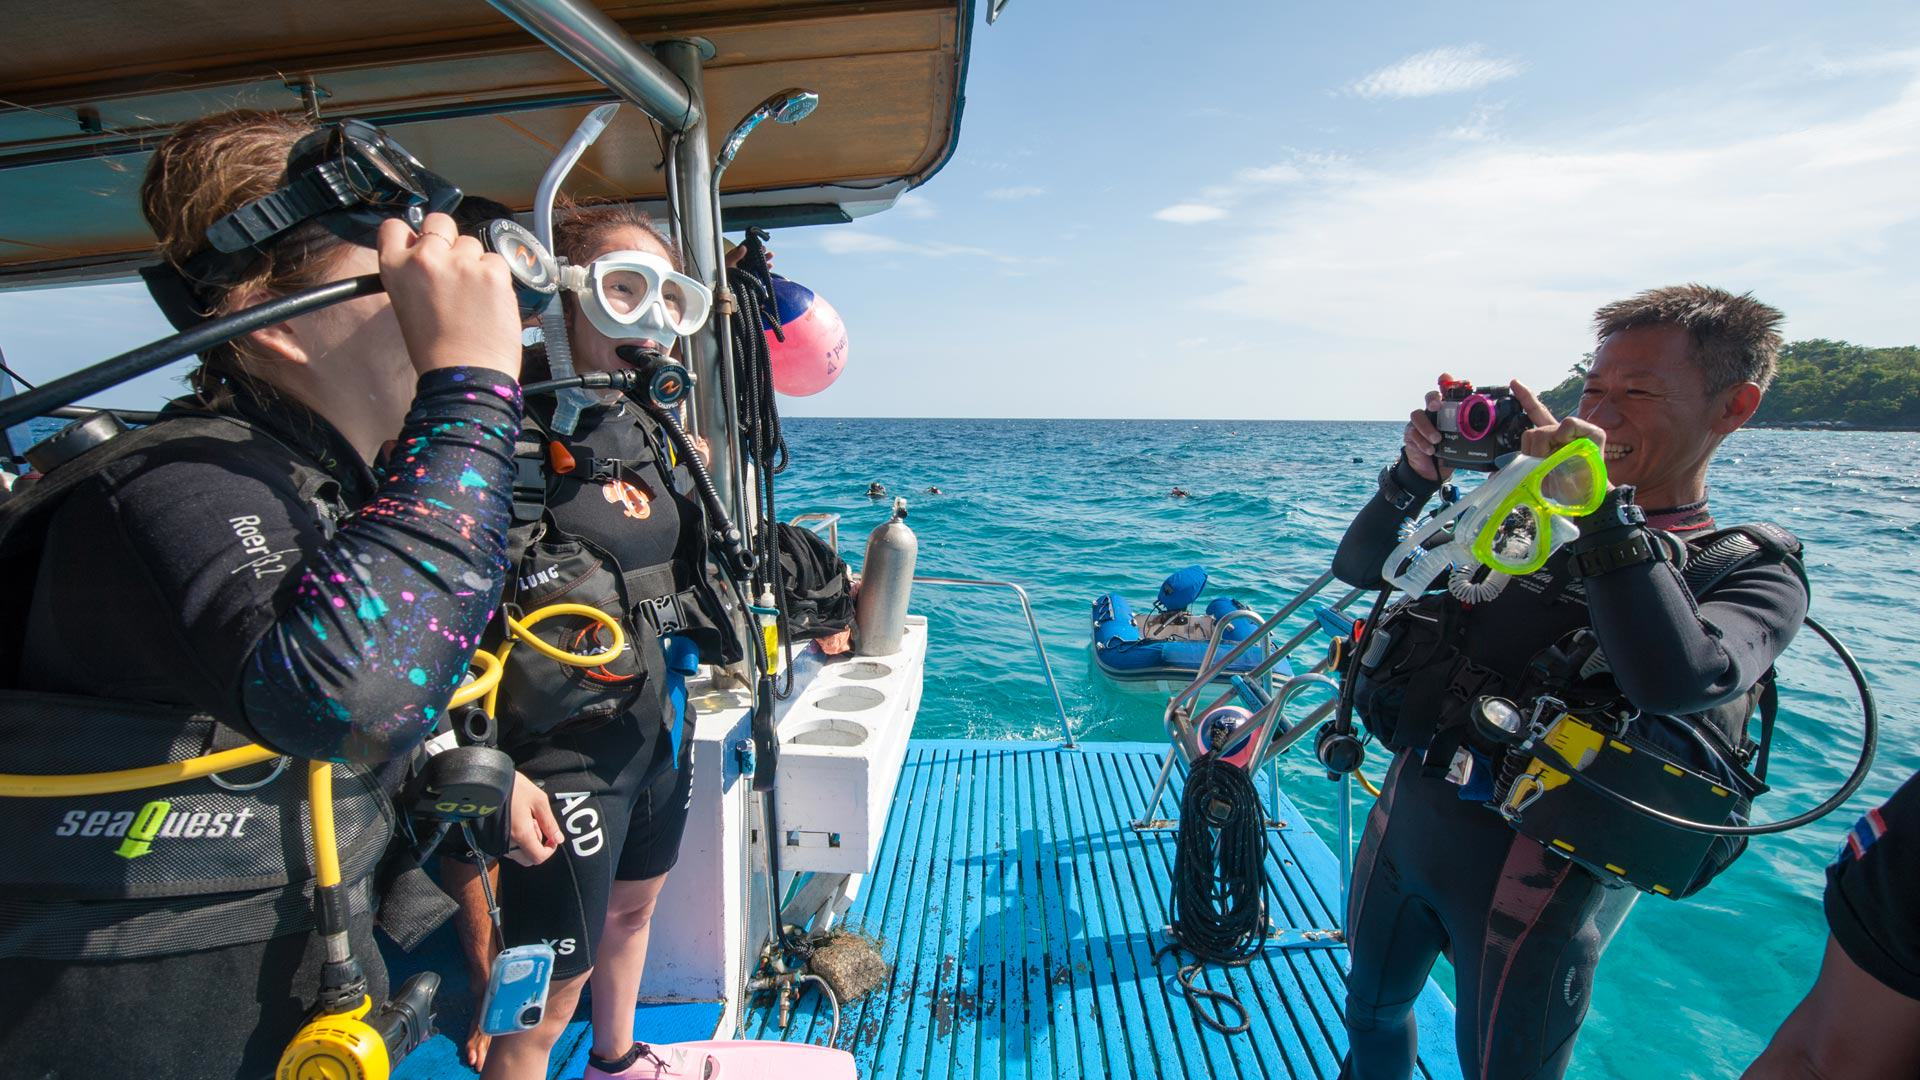 How to Become a PADI Certified Scuba Diver